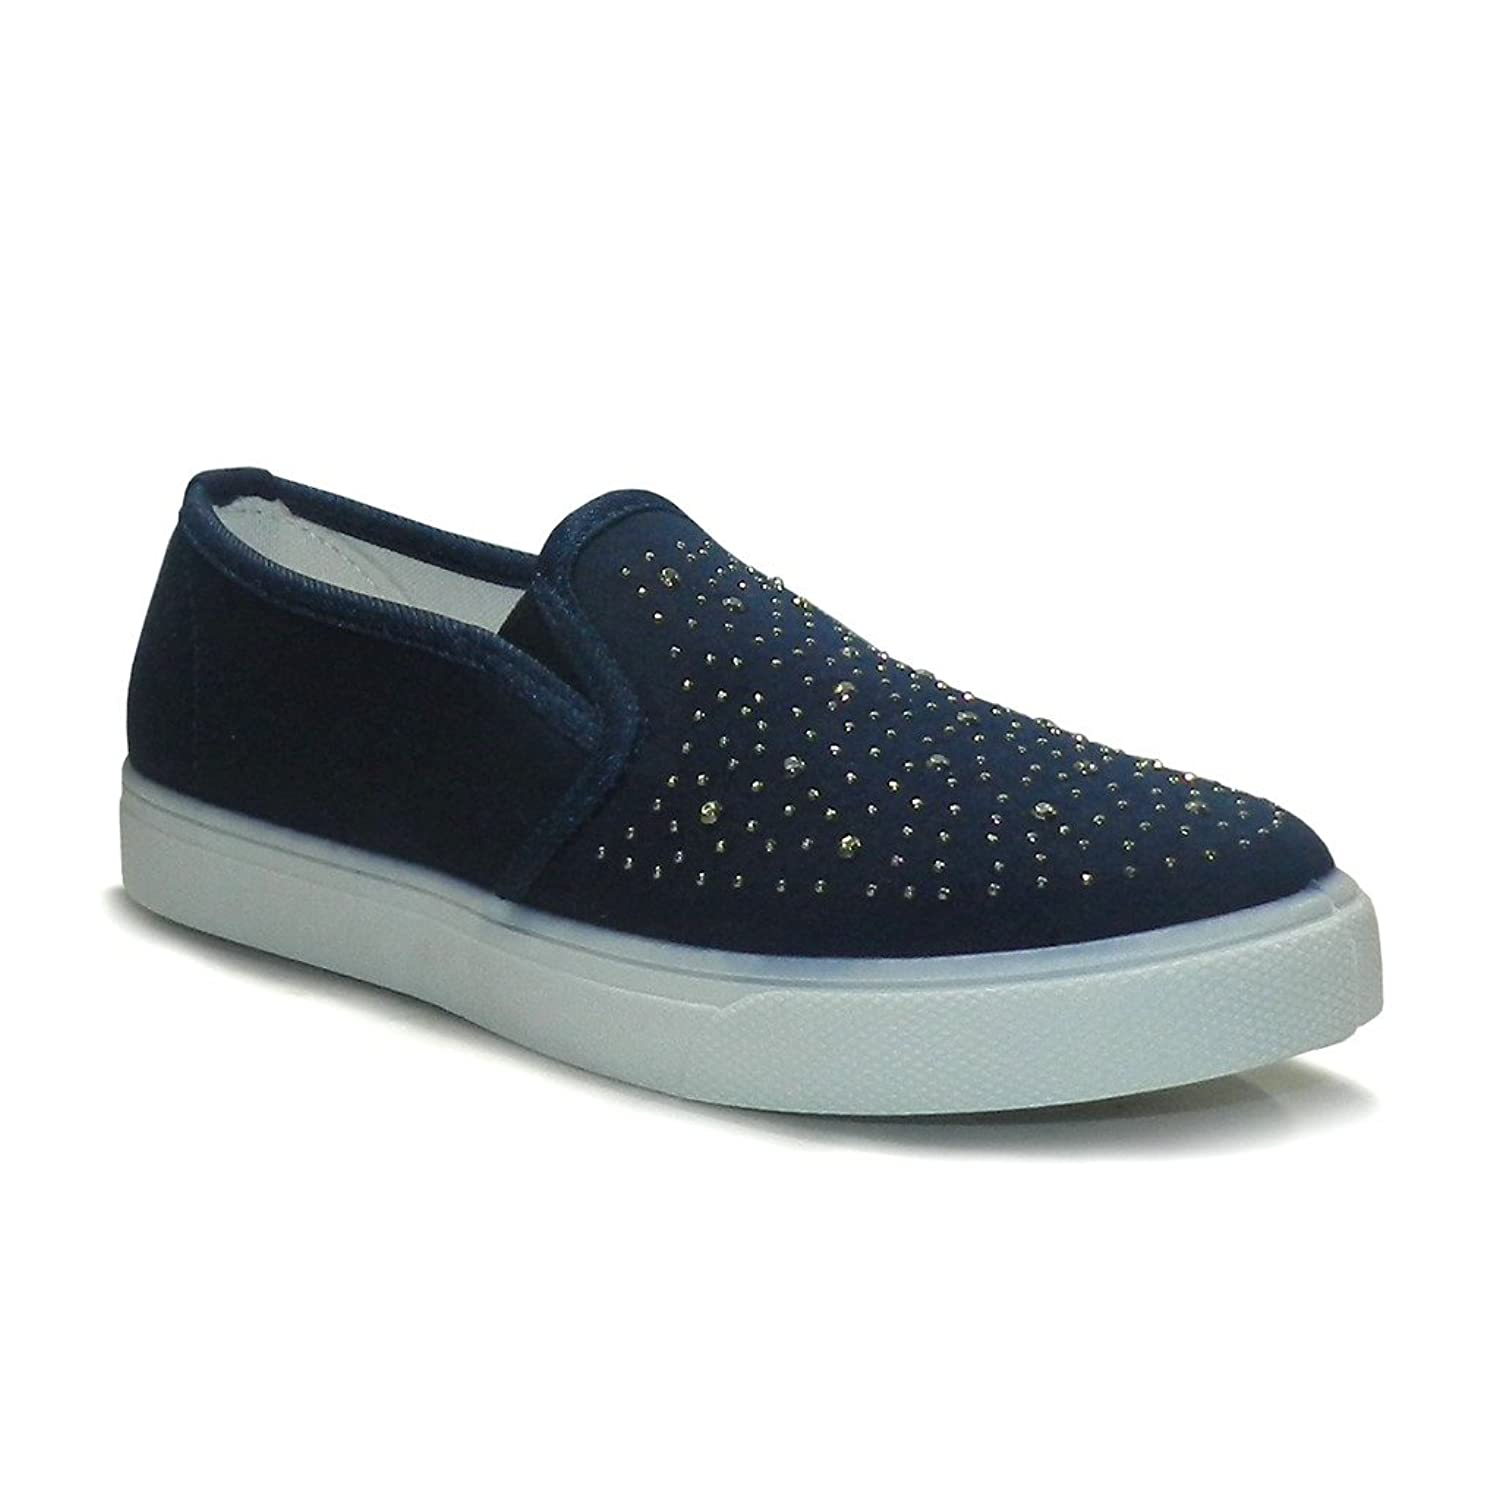 Sirouskee Studded Navy Color Stylish Women Casual Shoes